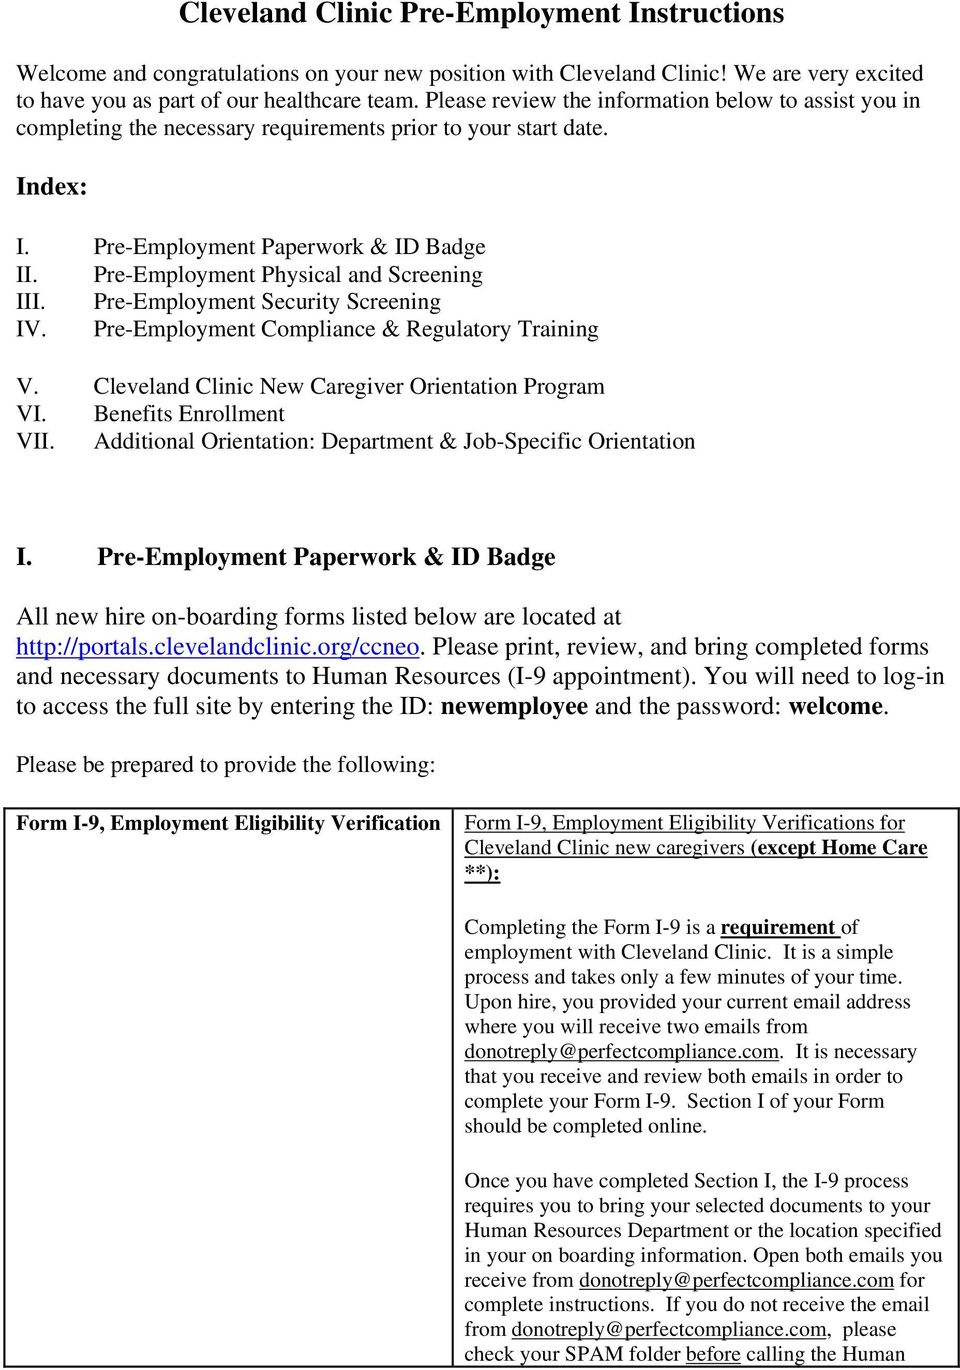 Cleveland Clinic Pre-Employment Instructions - PDF